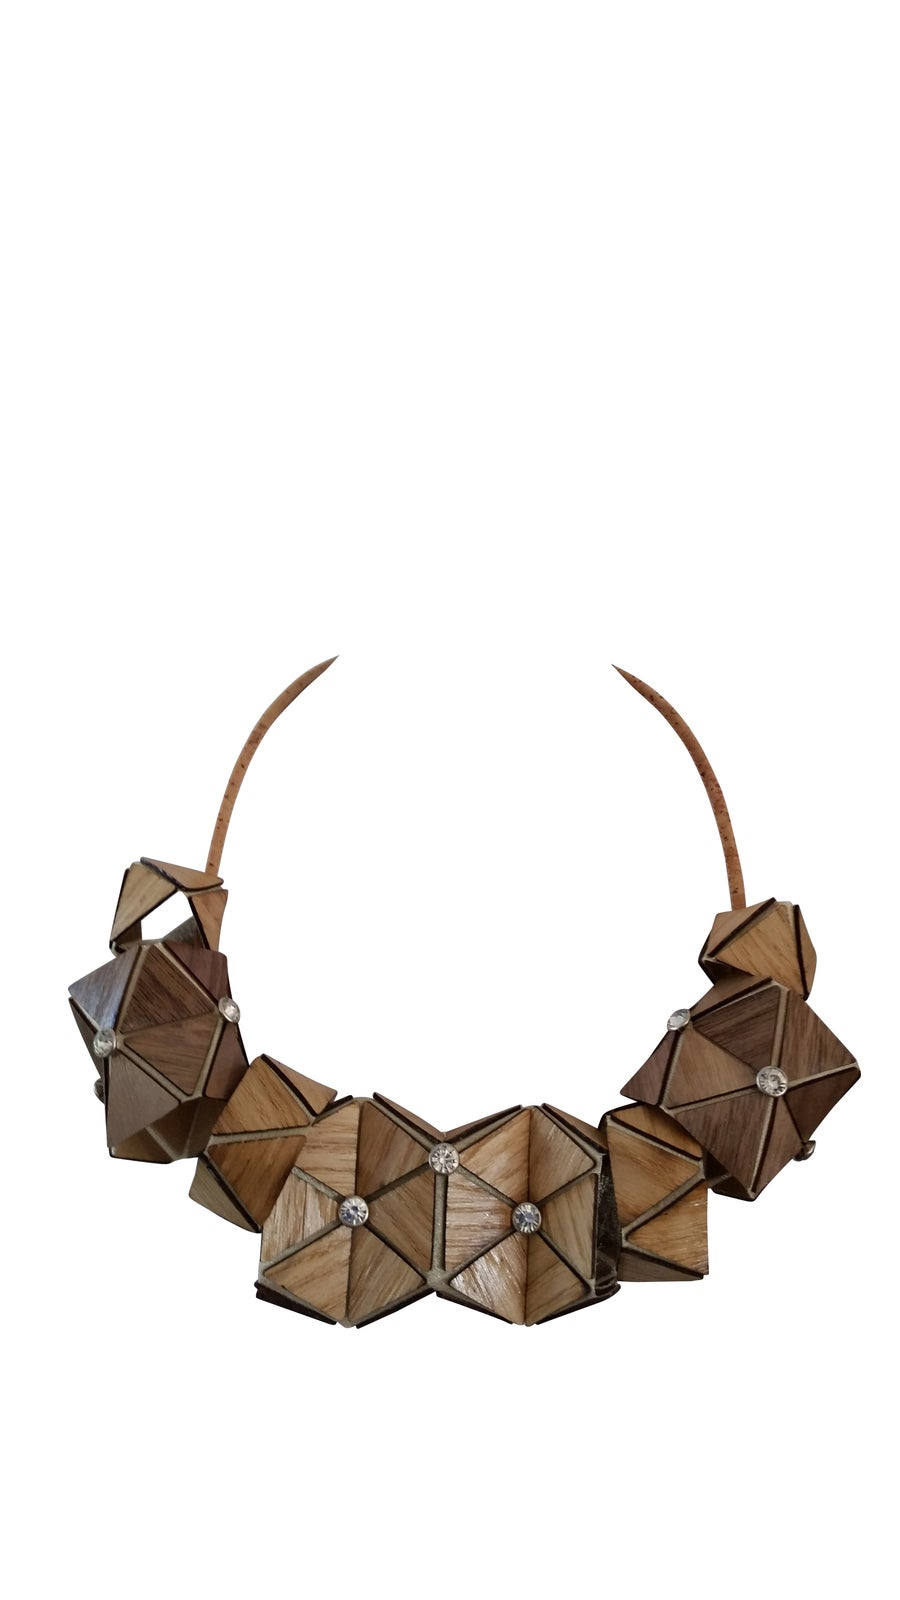 Image of Necklace in wooden textile - tessellation n.2